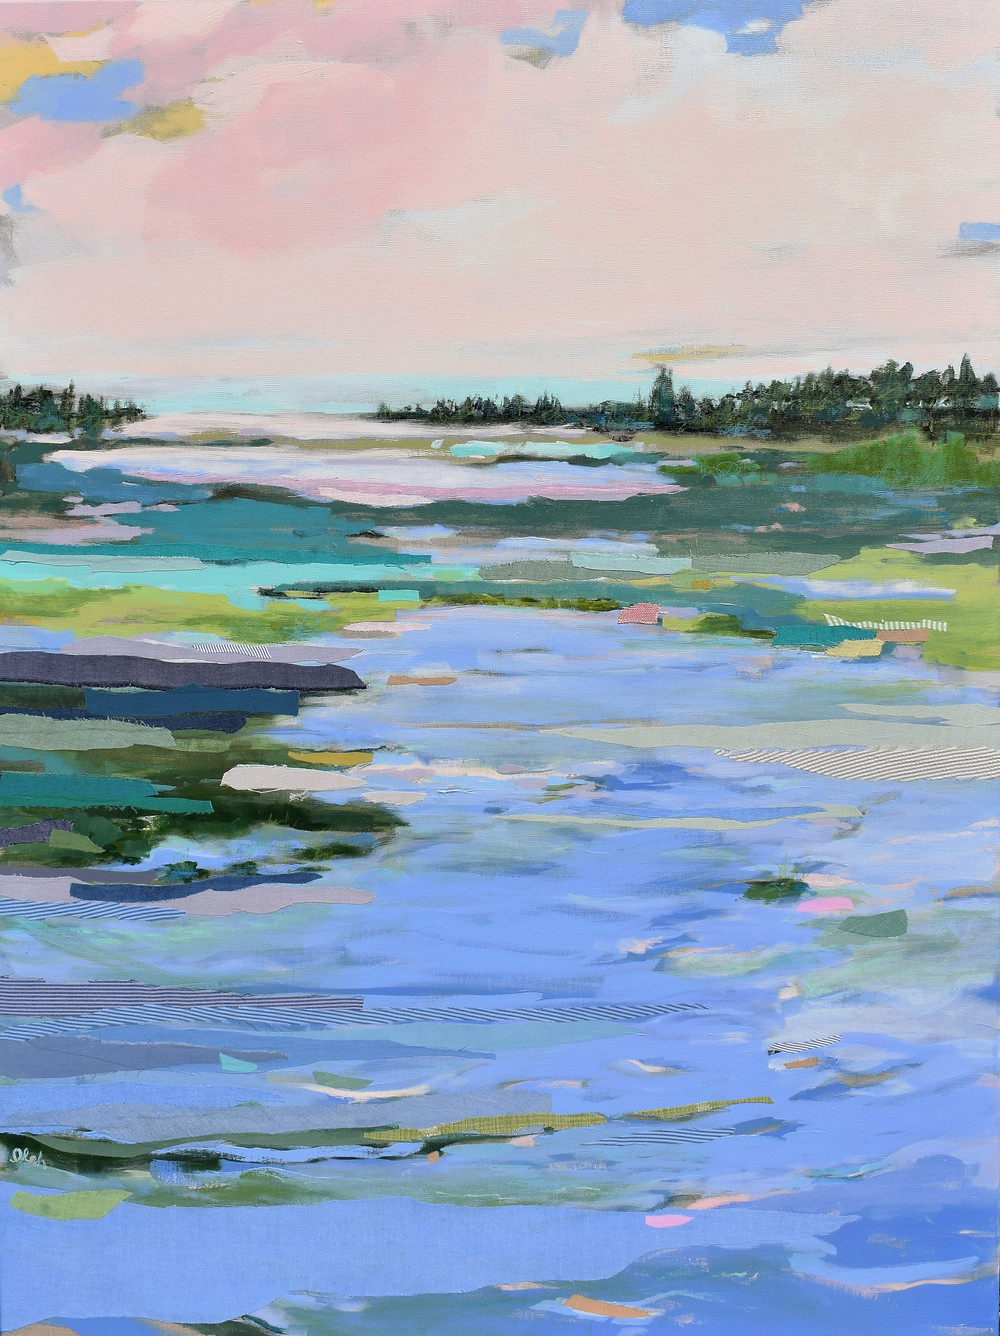 Bay Blush by Karin Olah, mixed media with hand-dyed fabric on linen, 48x36 inches